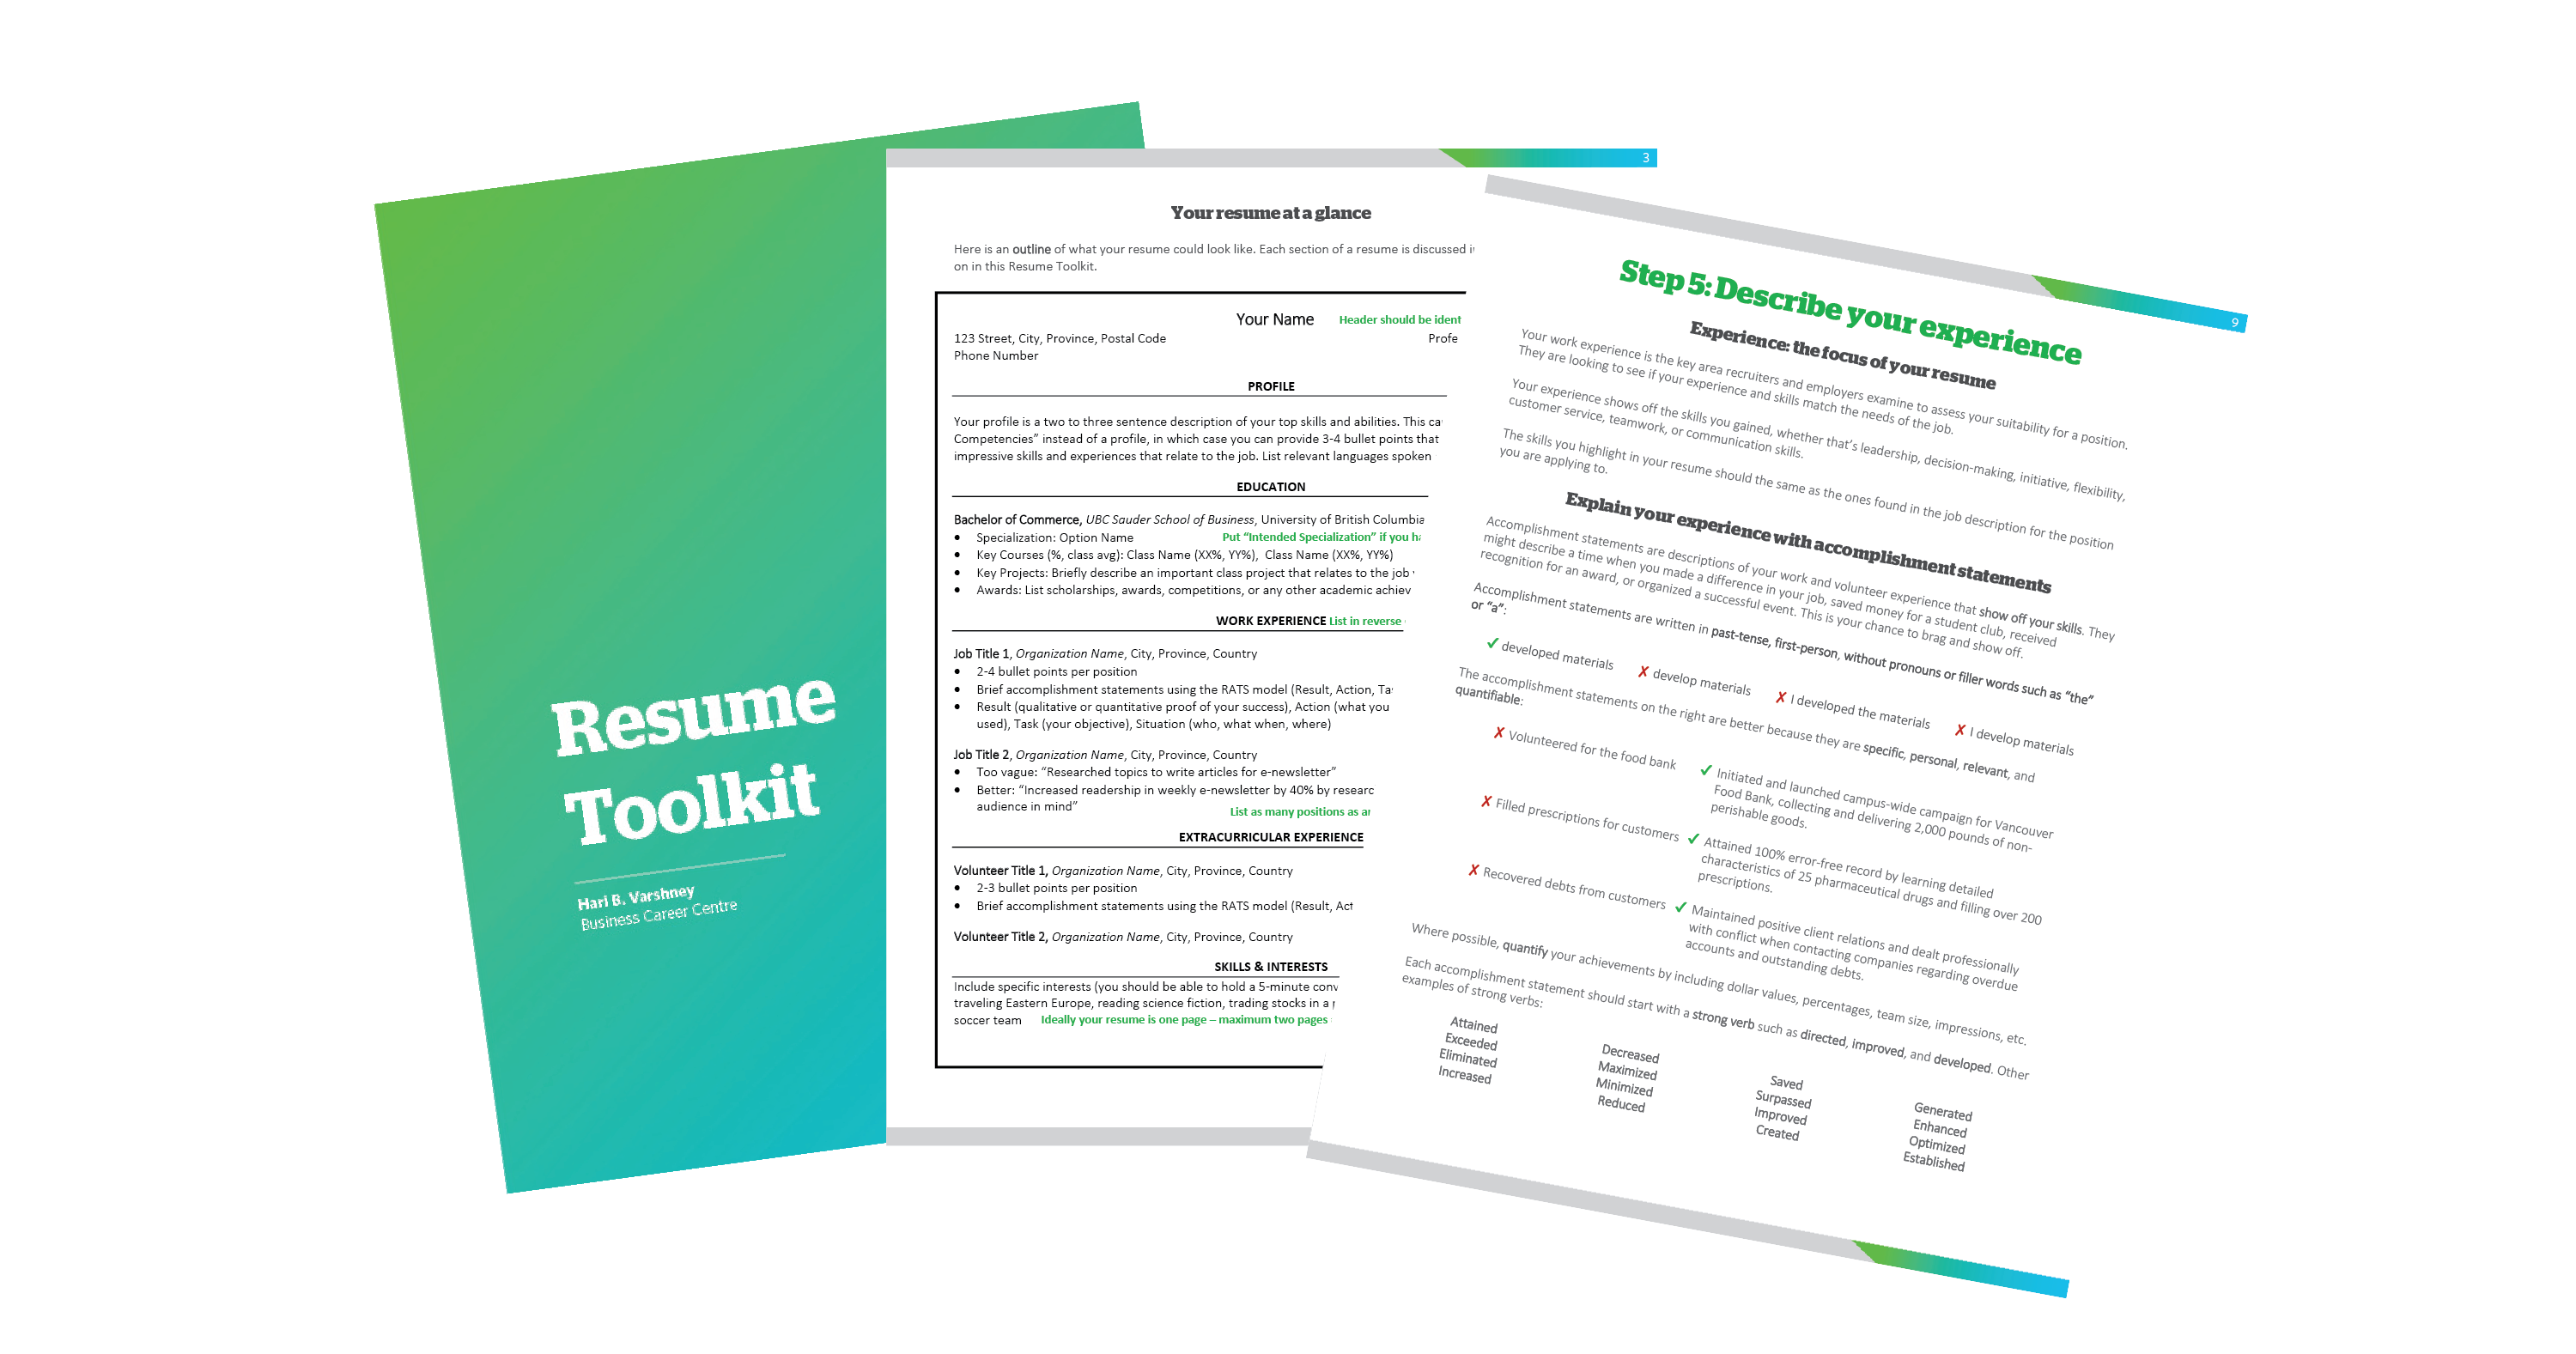 Download Your Resume Toolkit